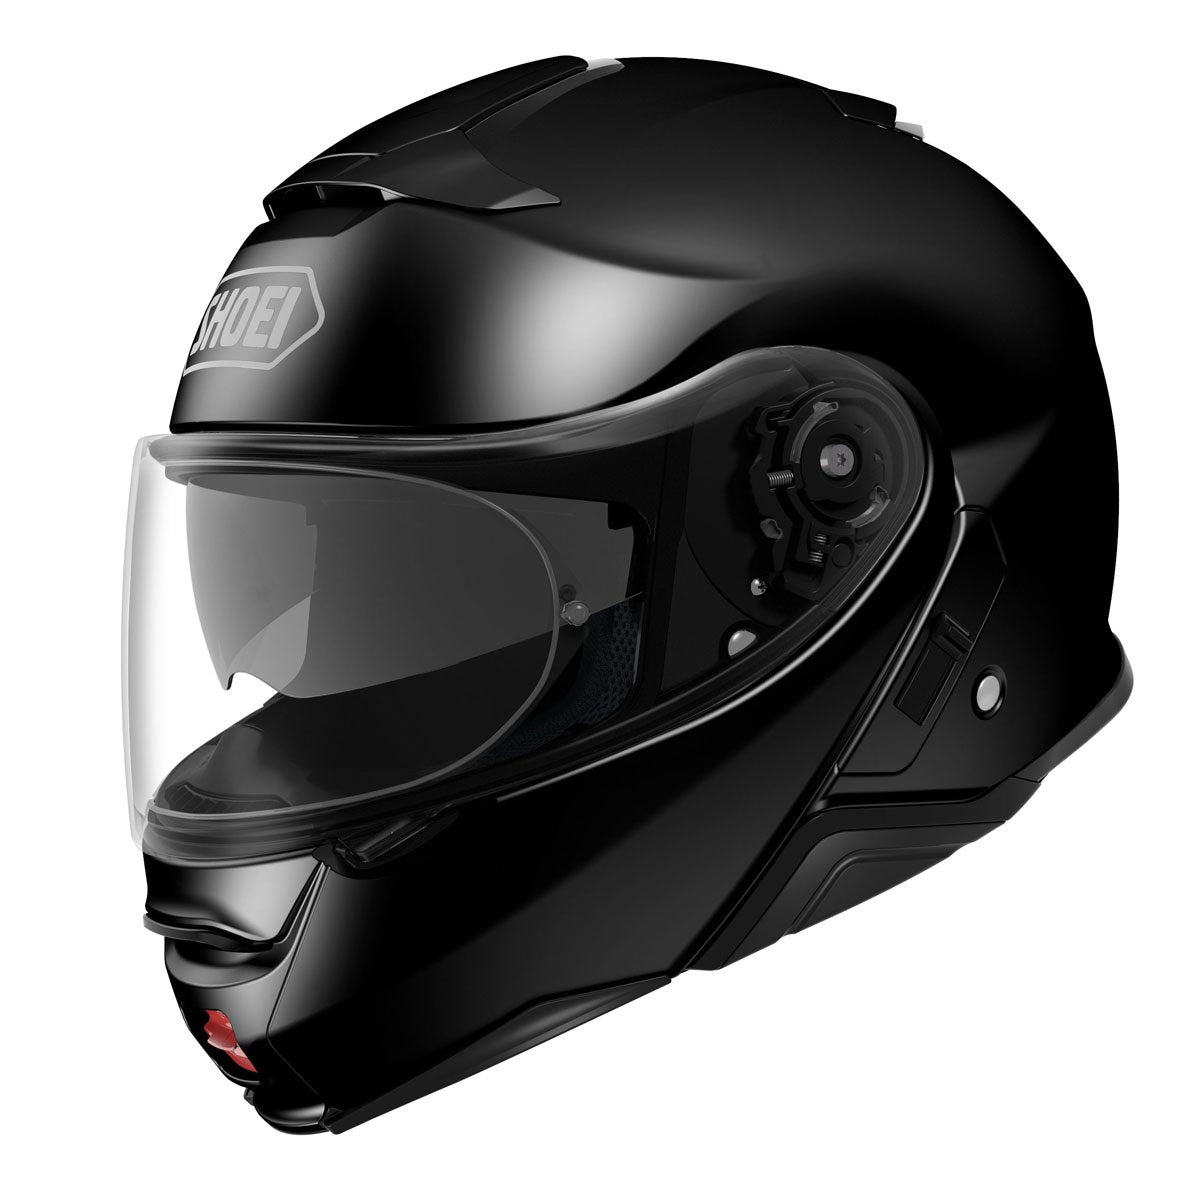 Shoei Neotec 2 Black SAVE 5% on RRP - Now only £493.99